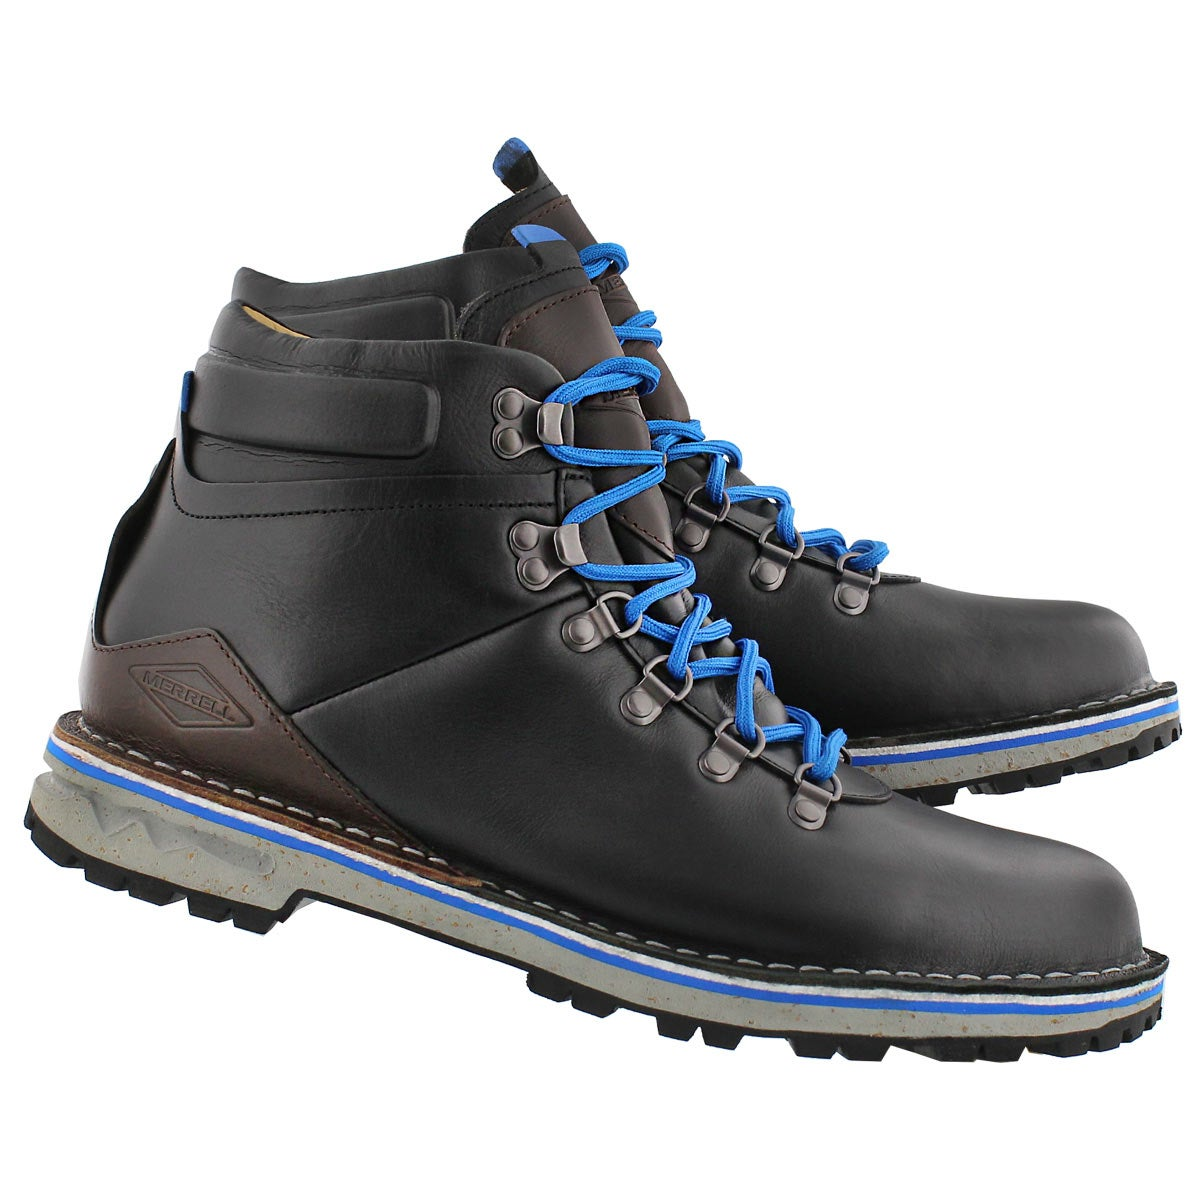 Mns Sugarbush blk wtpf hiking ankle boot